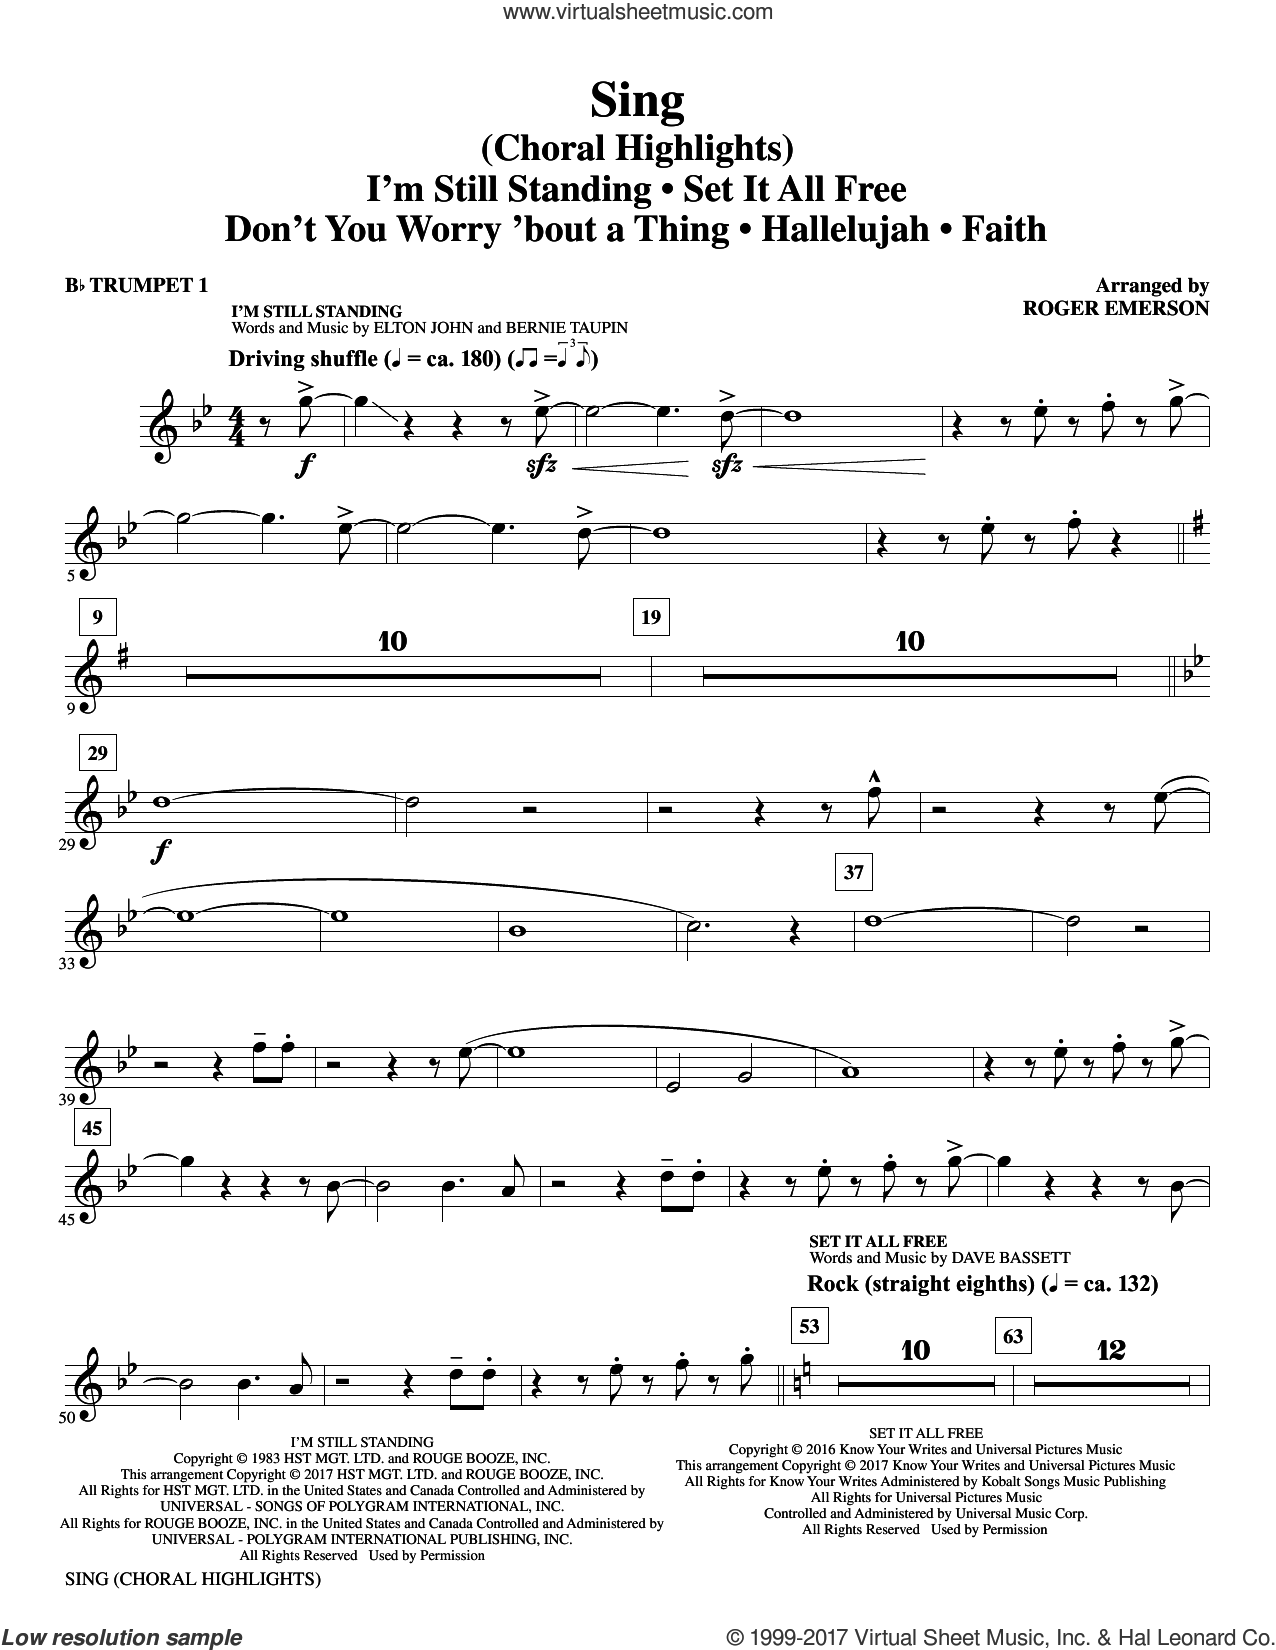 Sing (Choral Highlights) sheet music for orchestra/band (Bb trumpet 1) by Leonard Cohen, Roger Emerson, Justin Timberlake & Matt Morris featuring Charlie Sexton and Lee DeWyze, intermediate. Score Image Preview.